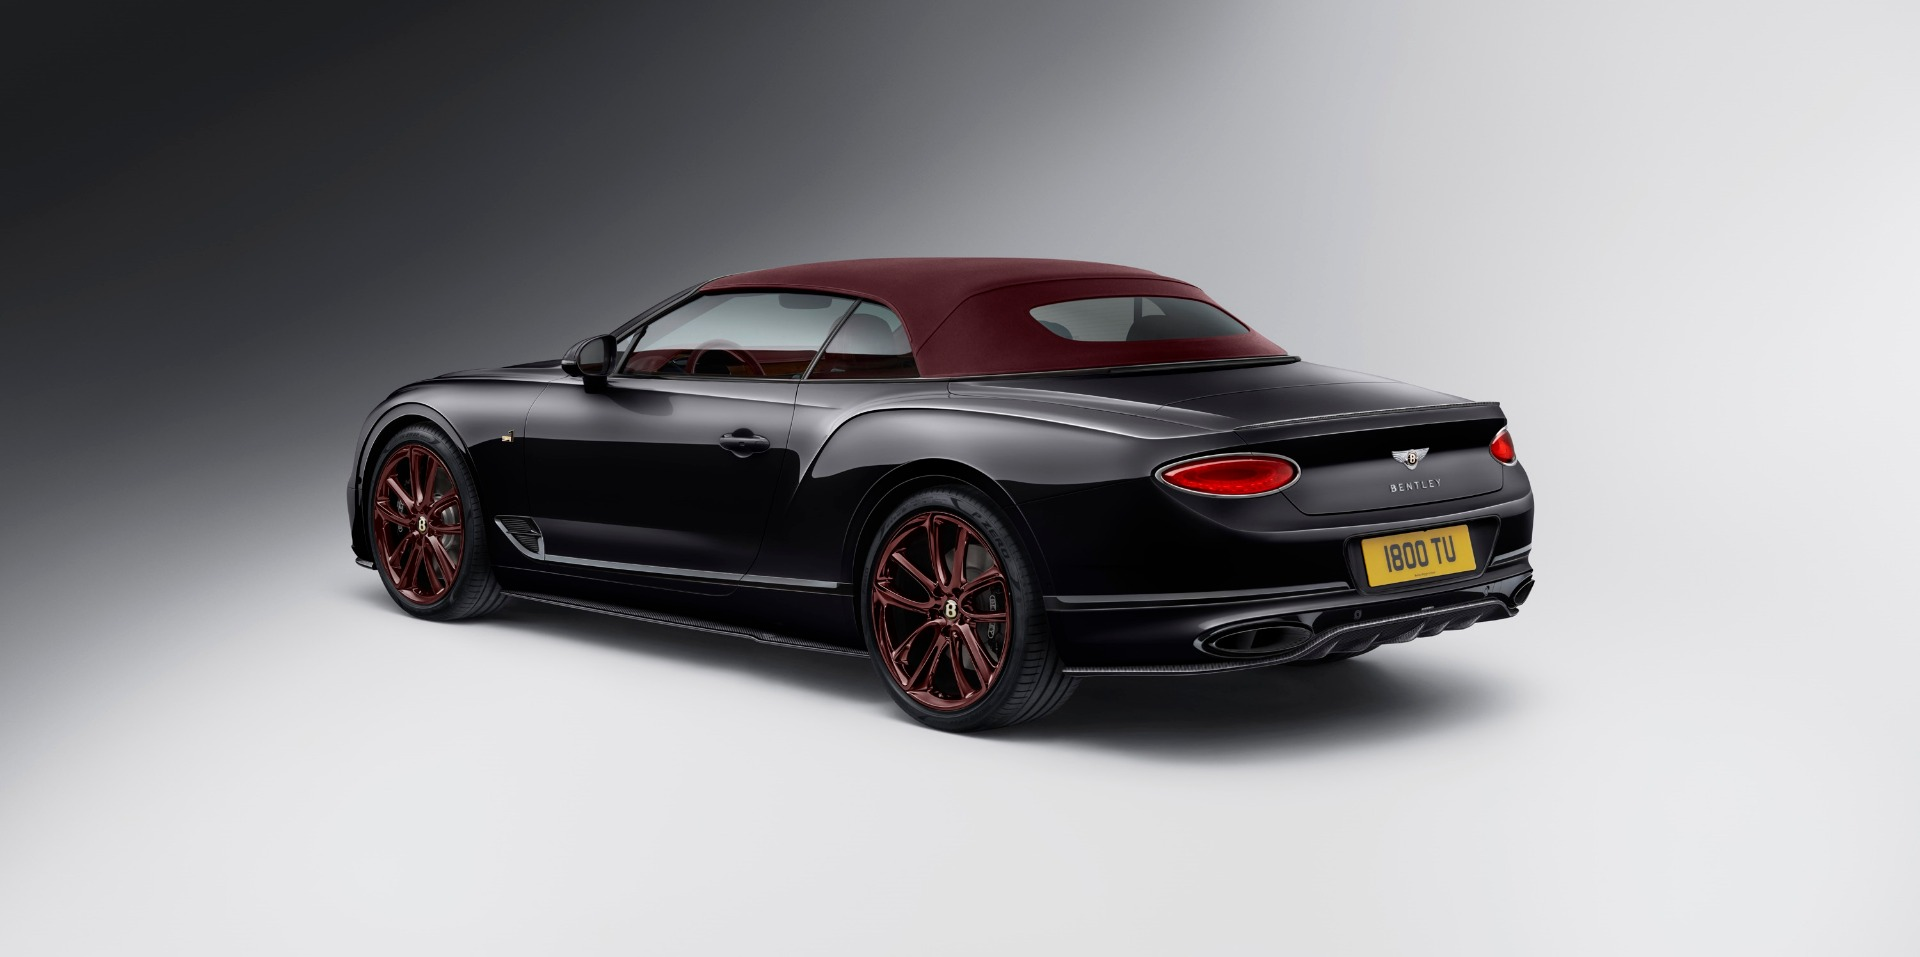 New 2020 Bentley Continental GTC W12 Number 1 Edition by Mulliner For Sale In Westport, CT 3467_p2